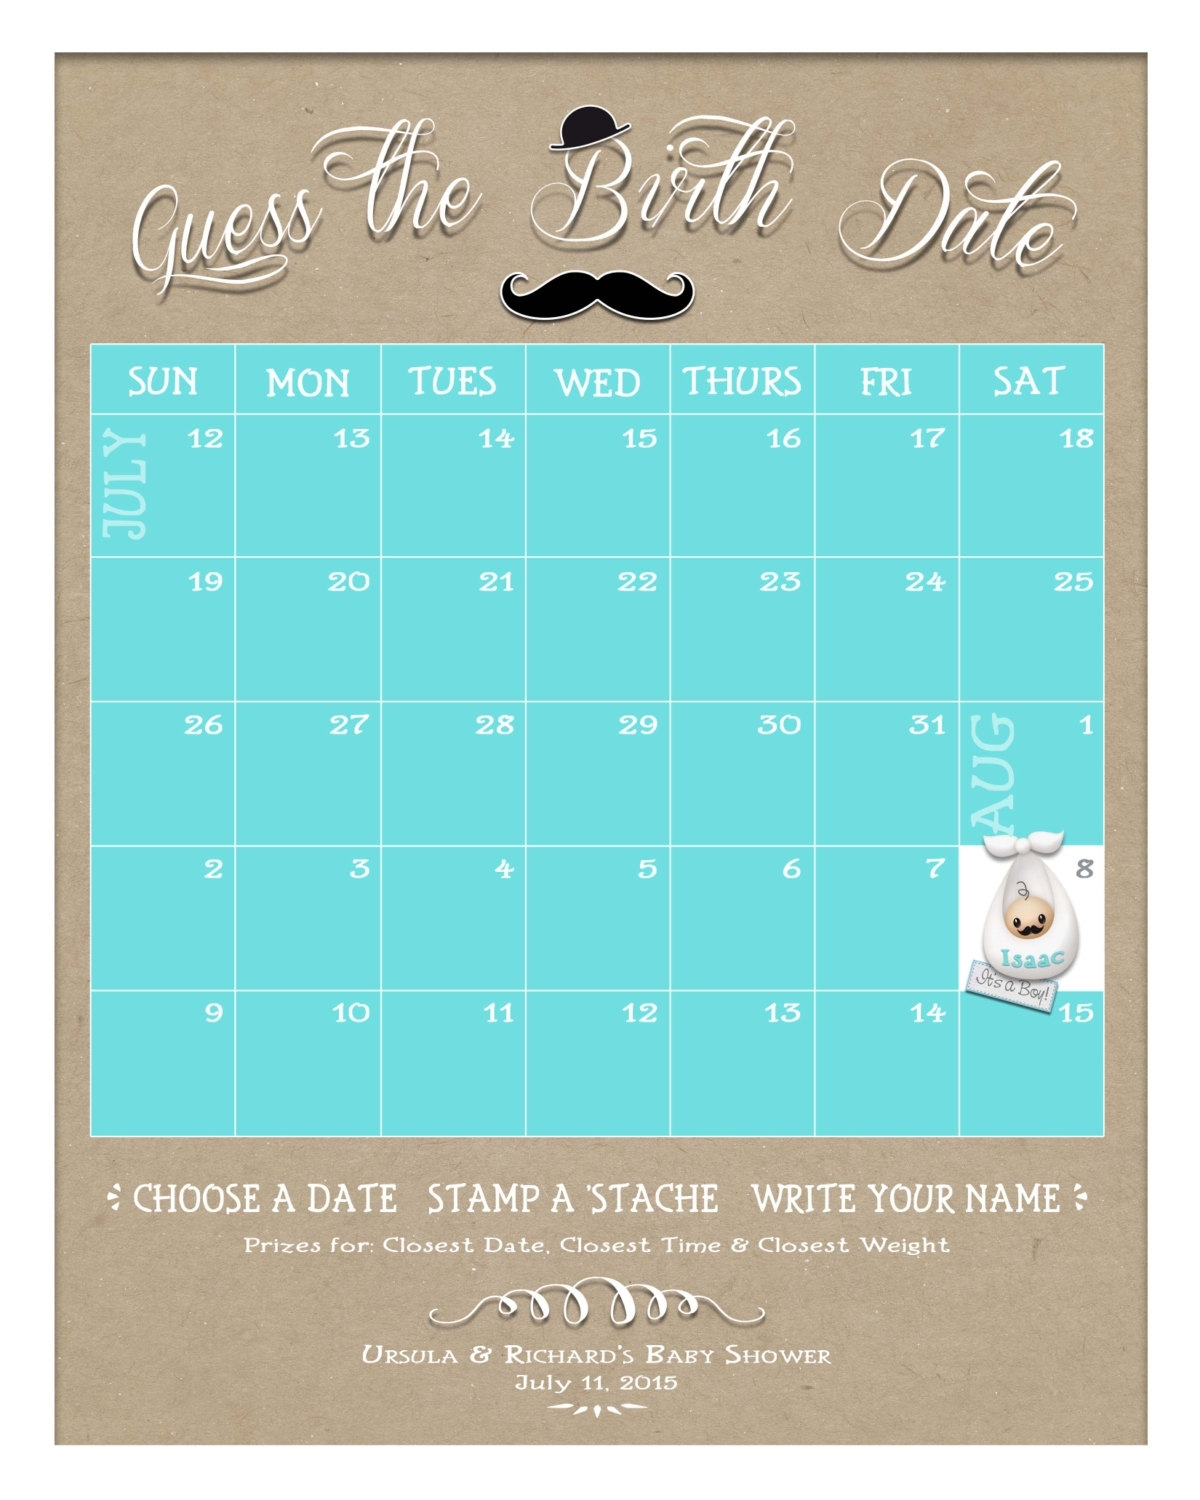 Guess The Birth Date Custom Baby Shower Game Board Keepsake